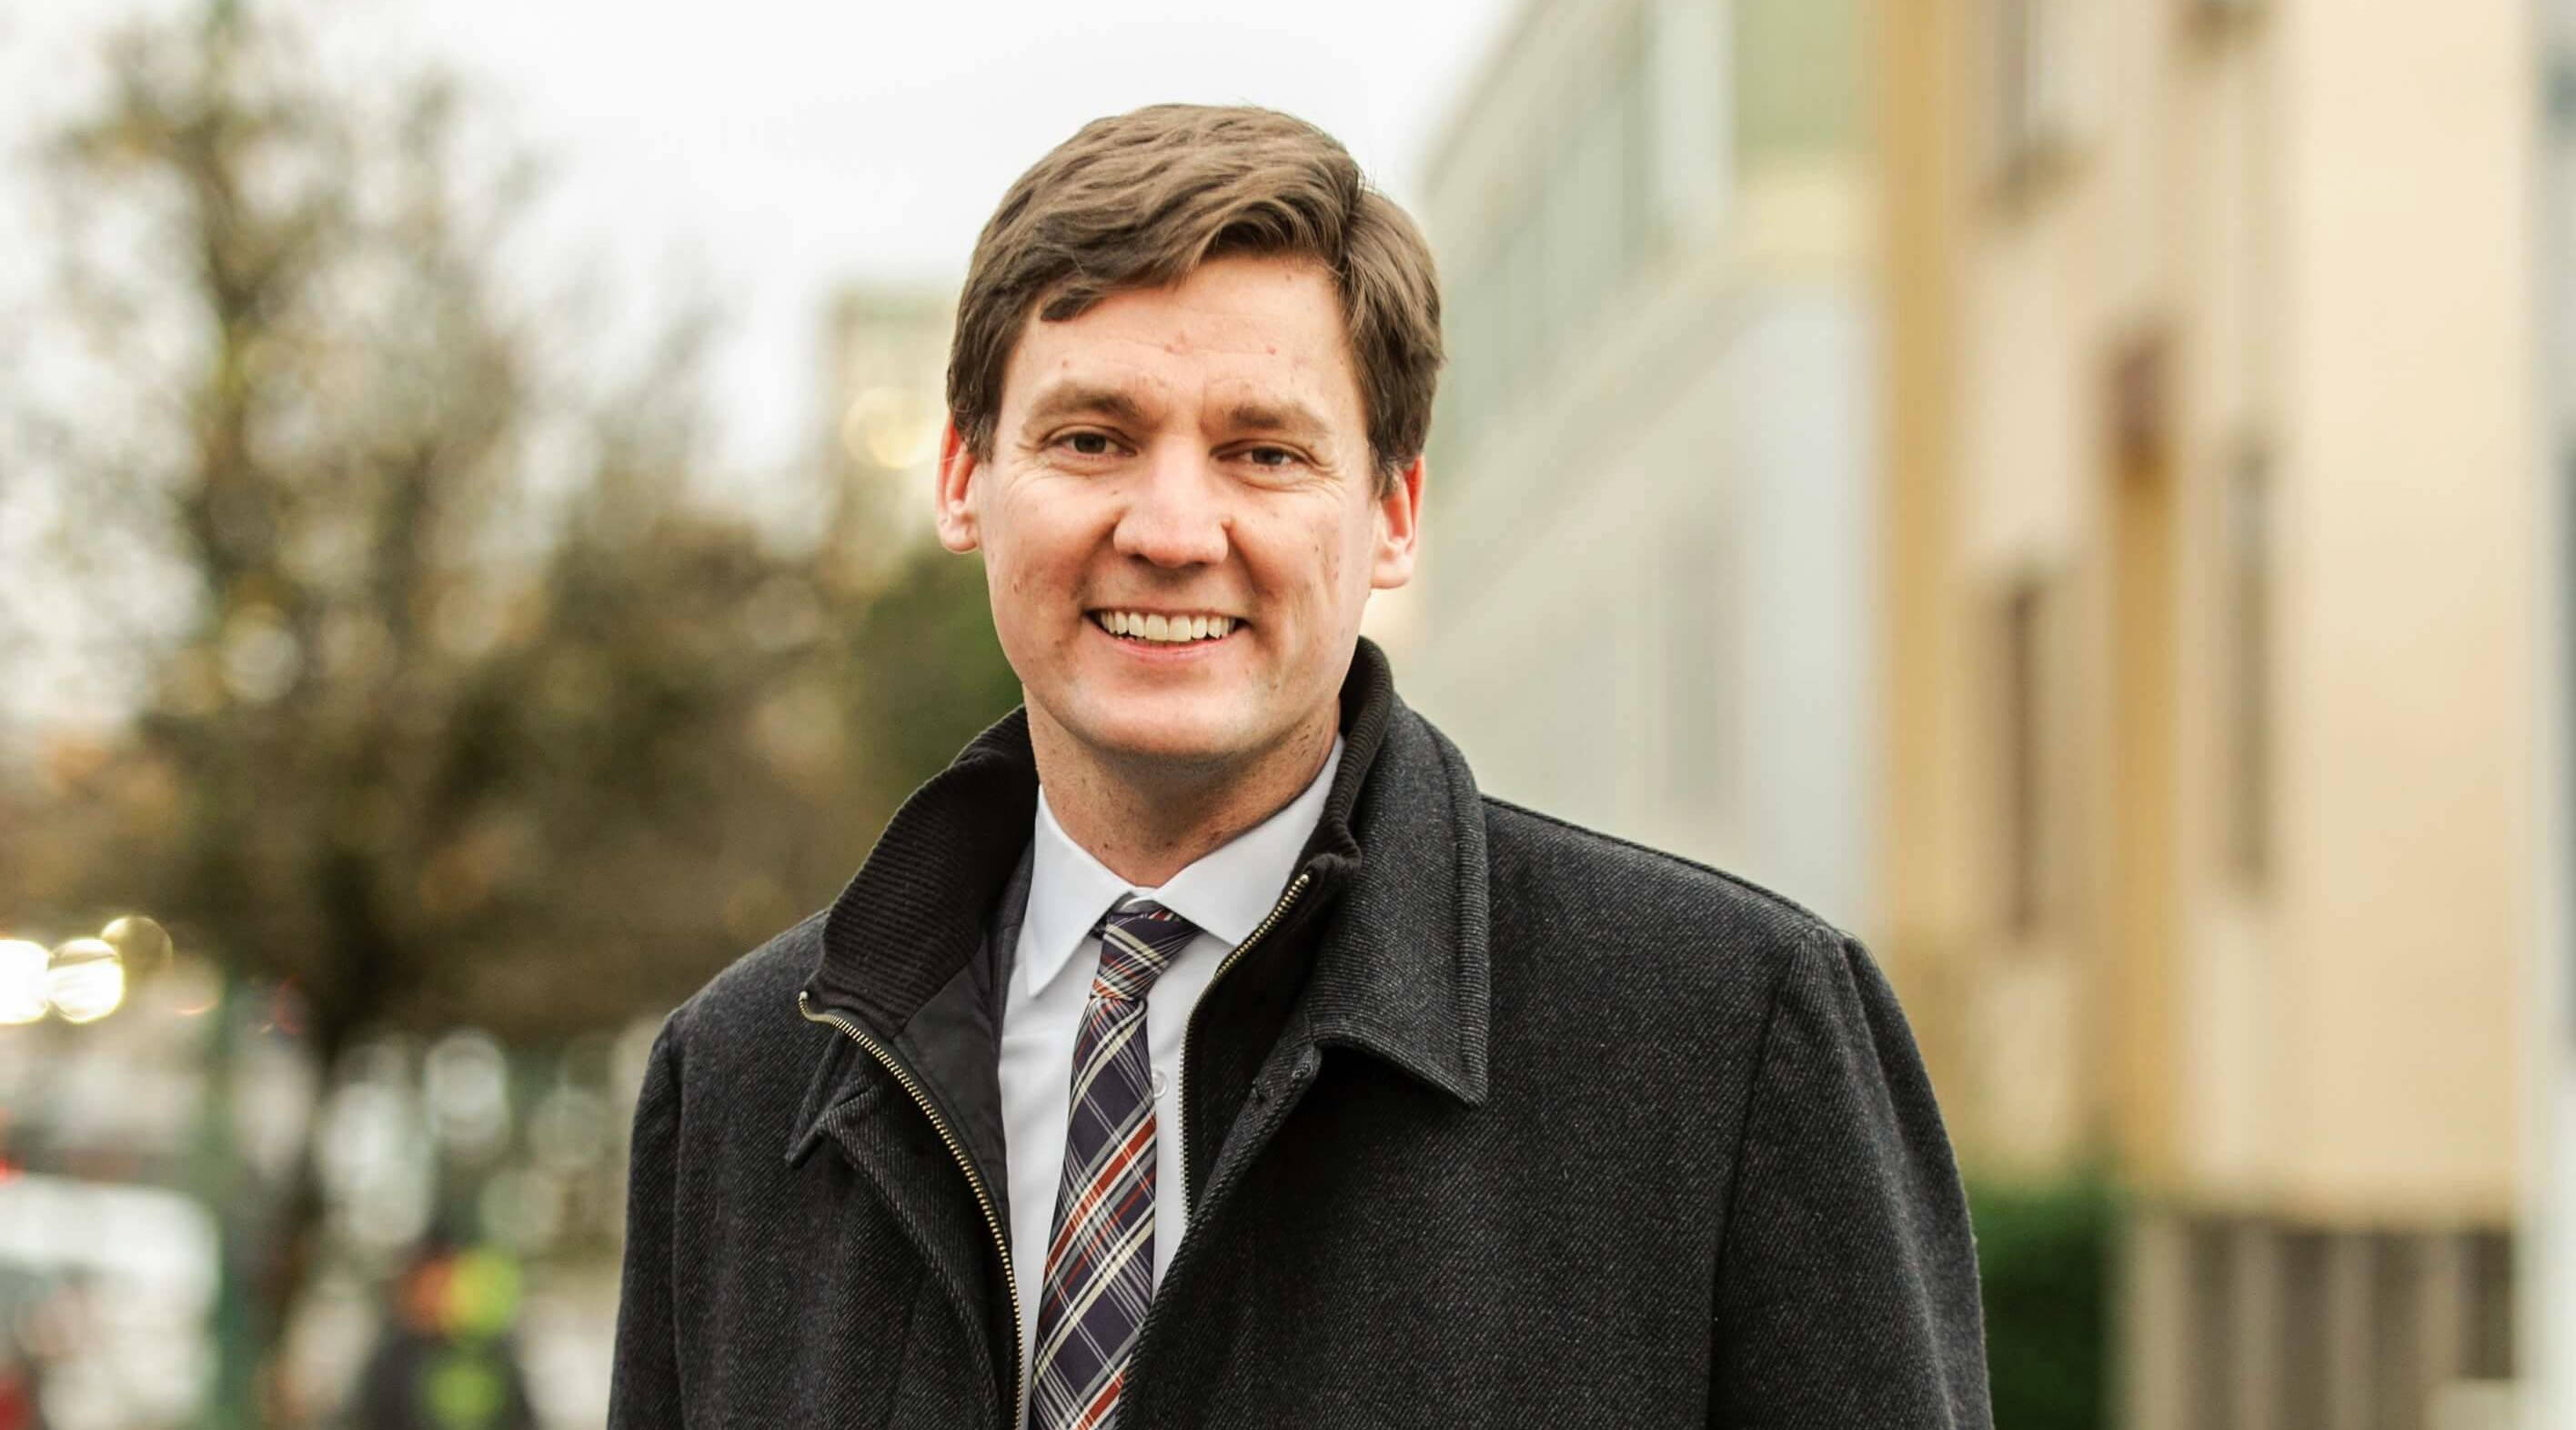 BC NDP's David Eby: It's too early to be talking about a coalition government